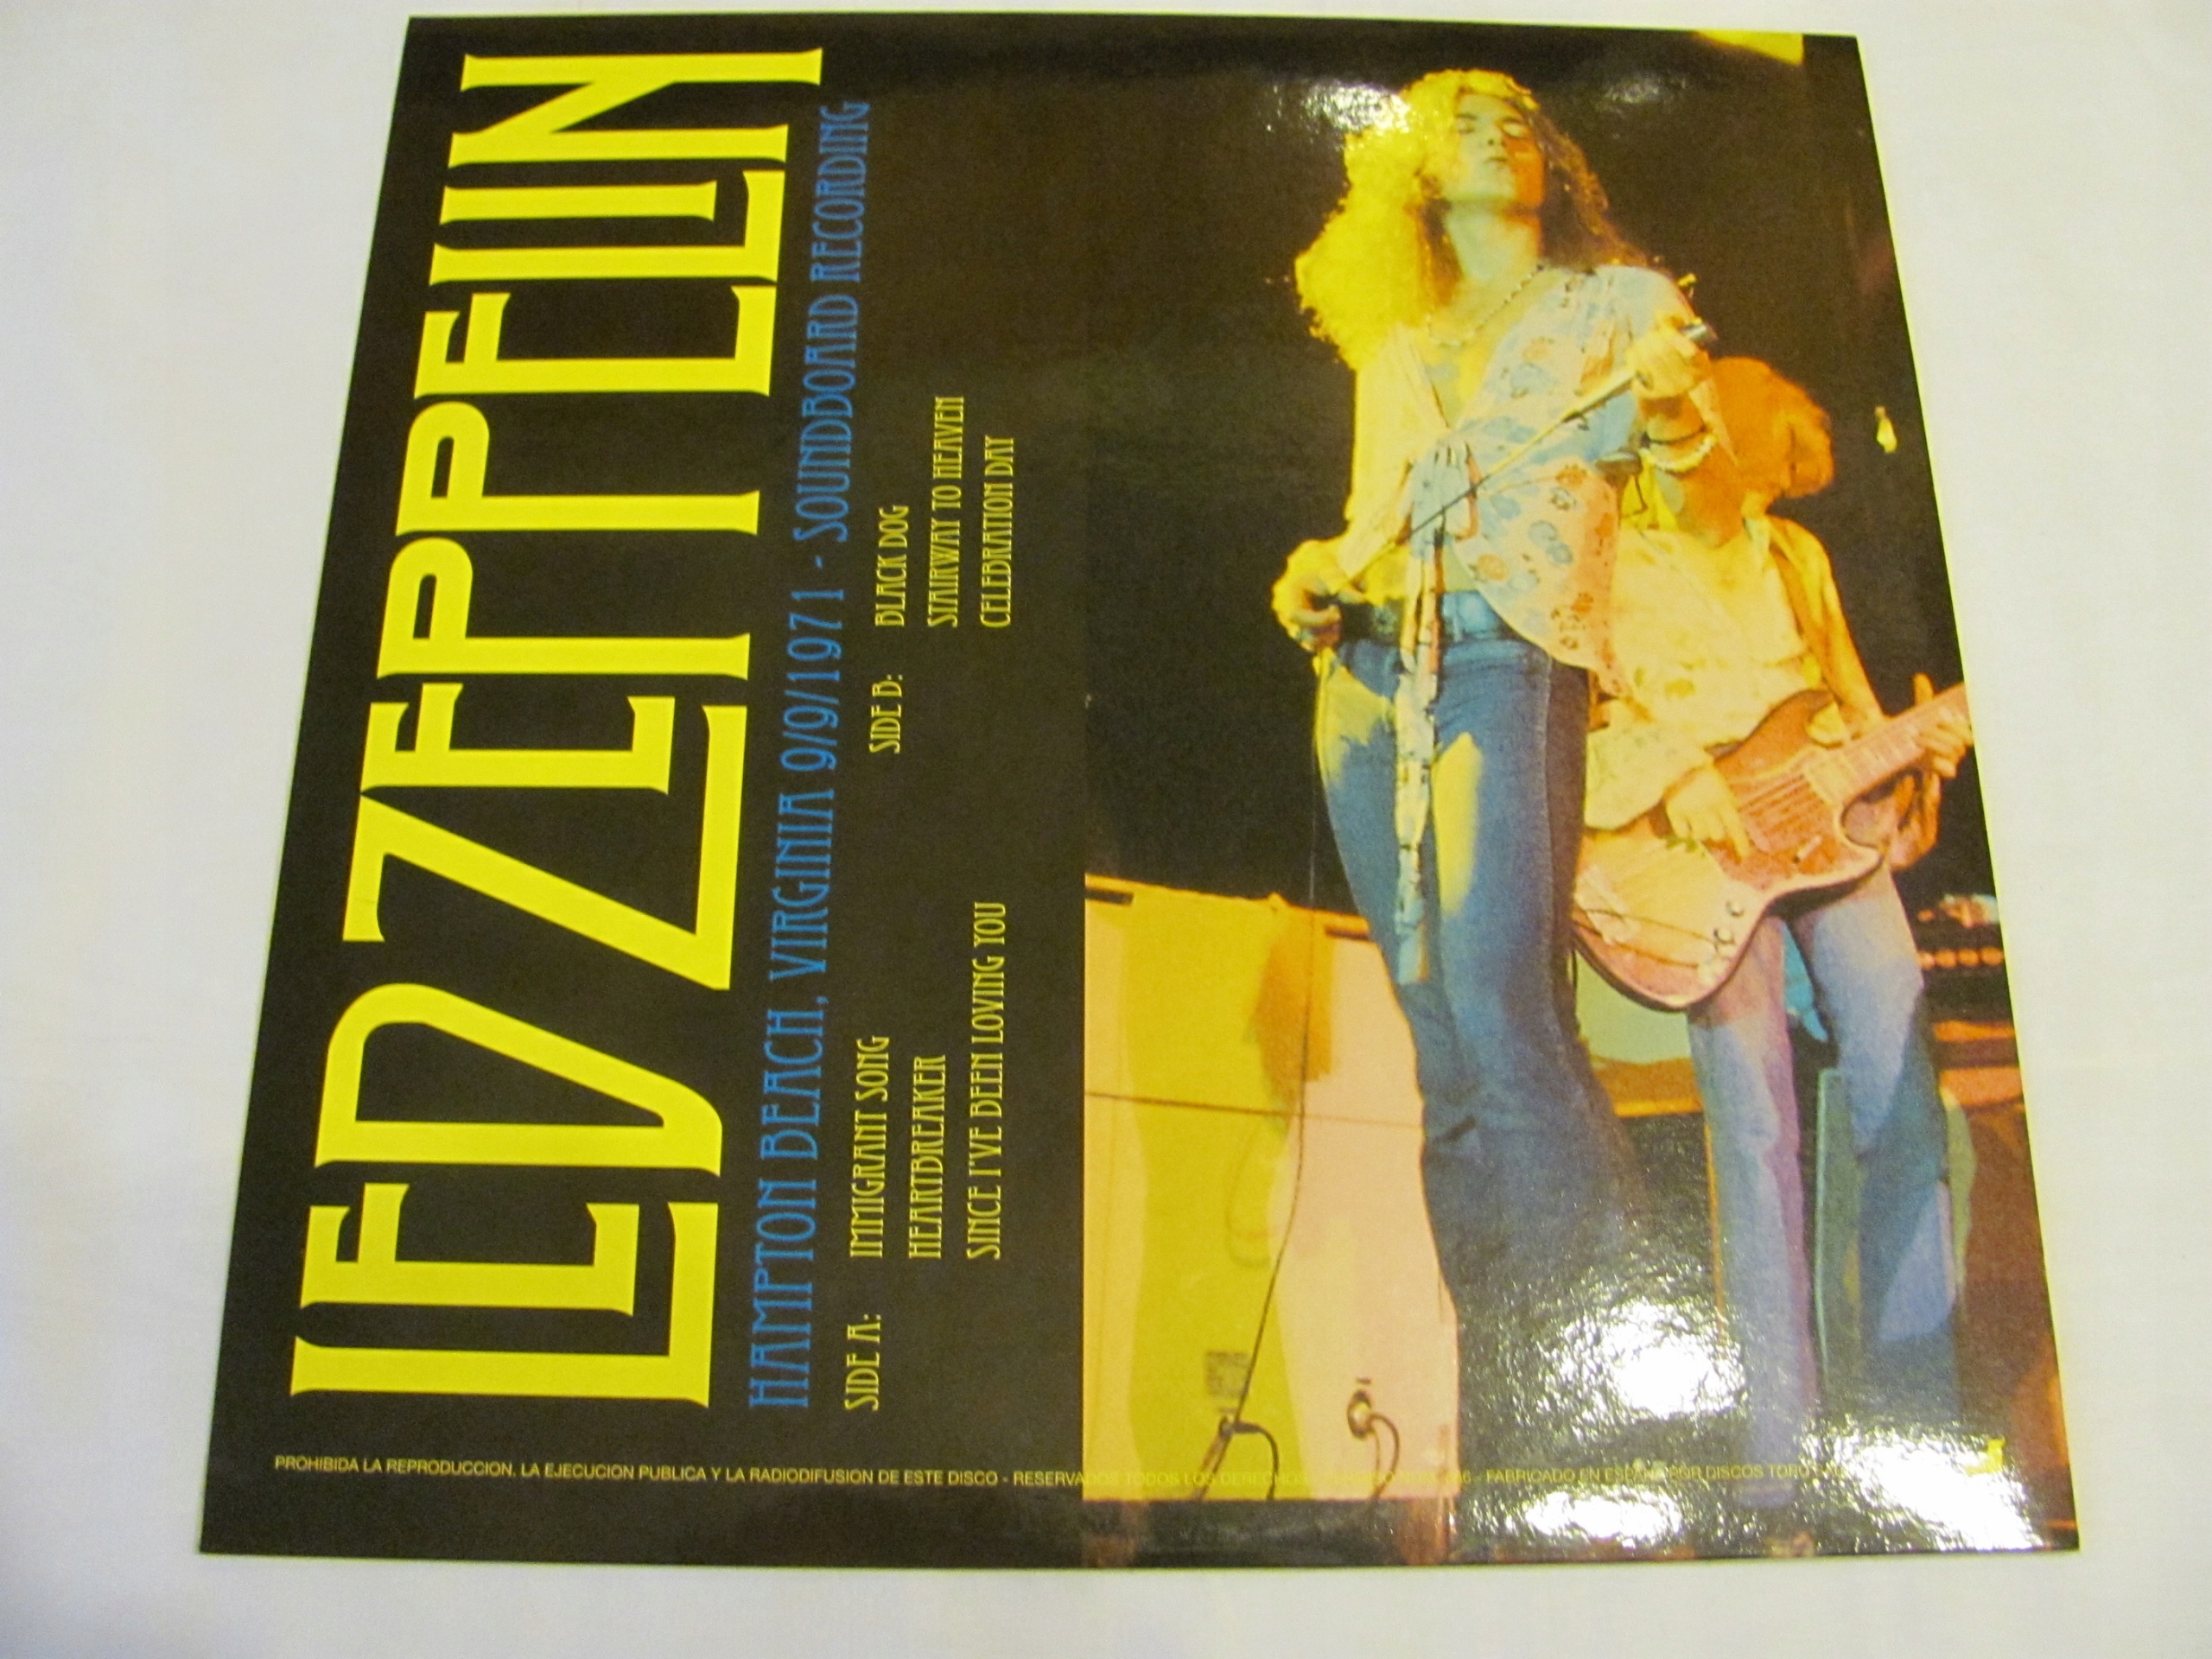 LED ZEPPELIN - DOES ANYONE REMEMBER HAMPTON 1971 - 7702128852